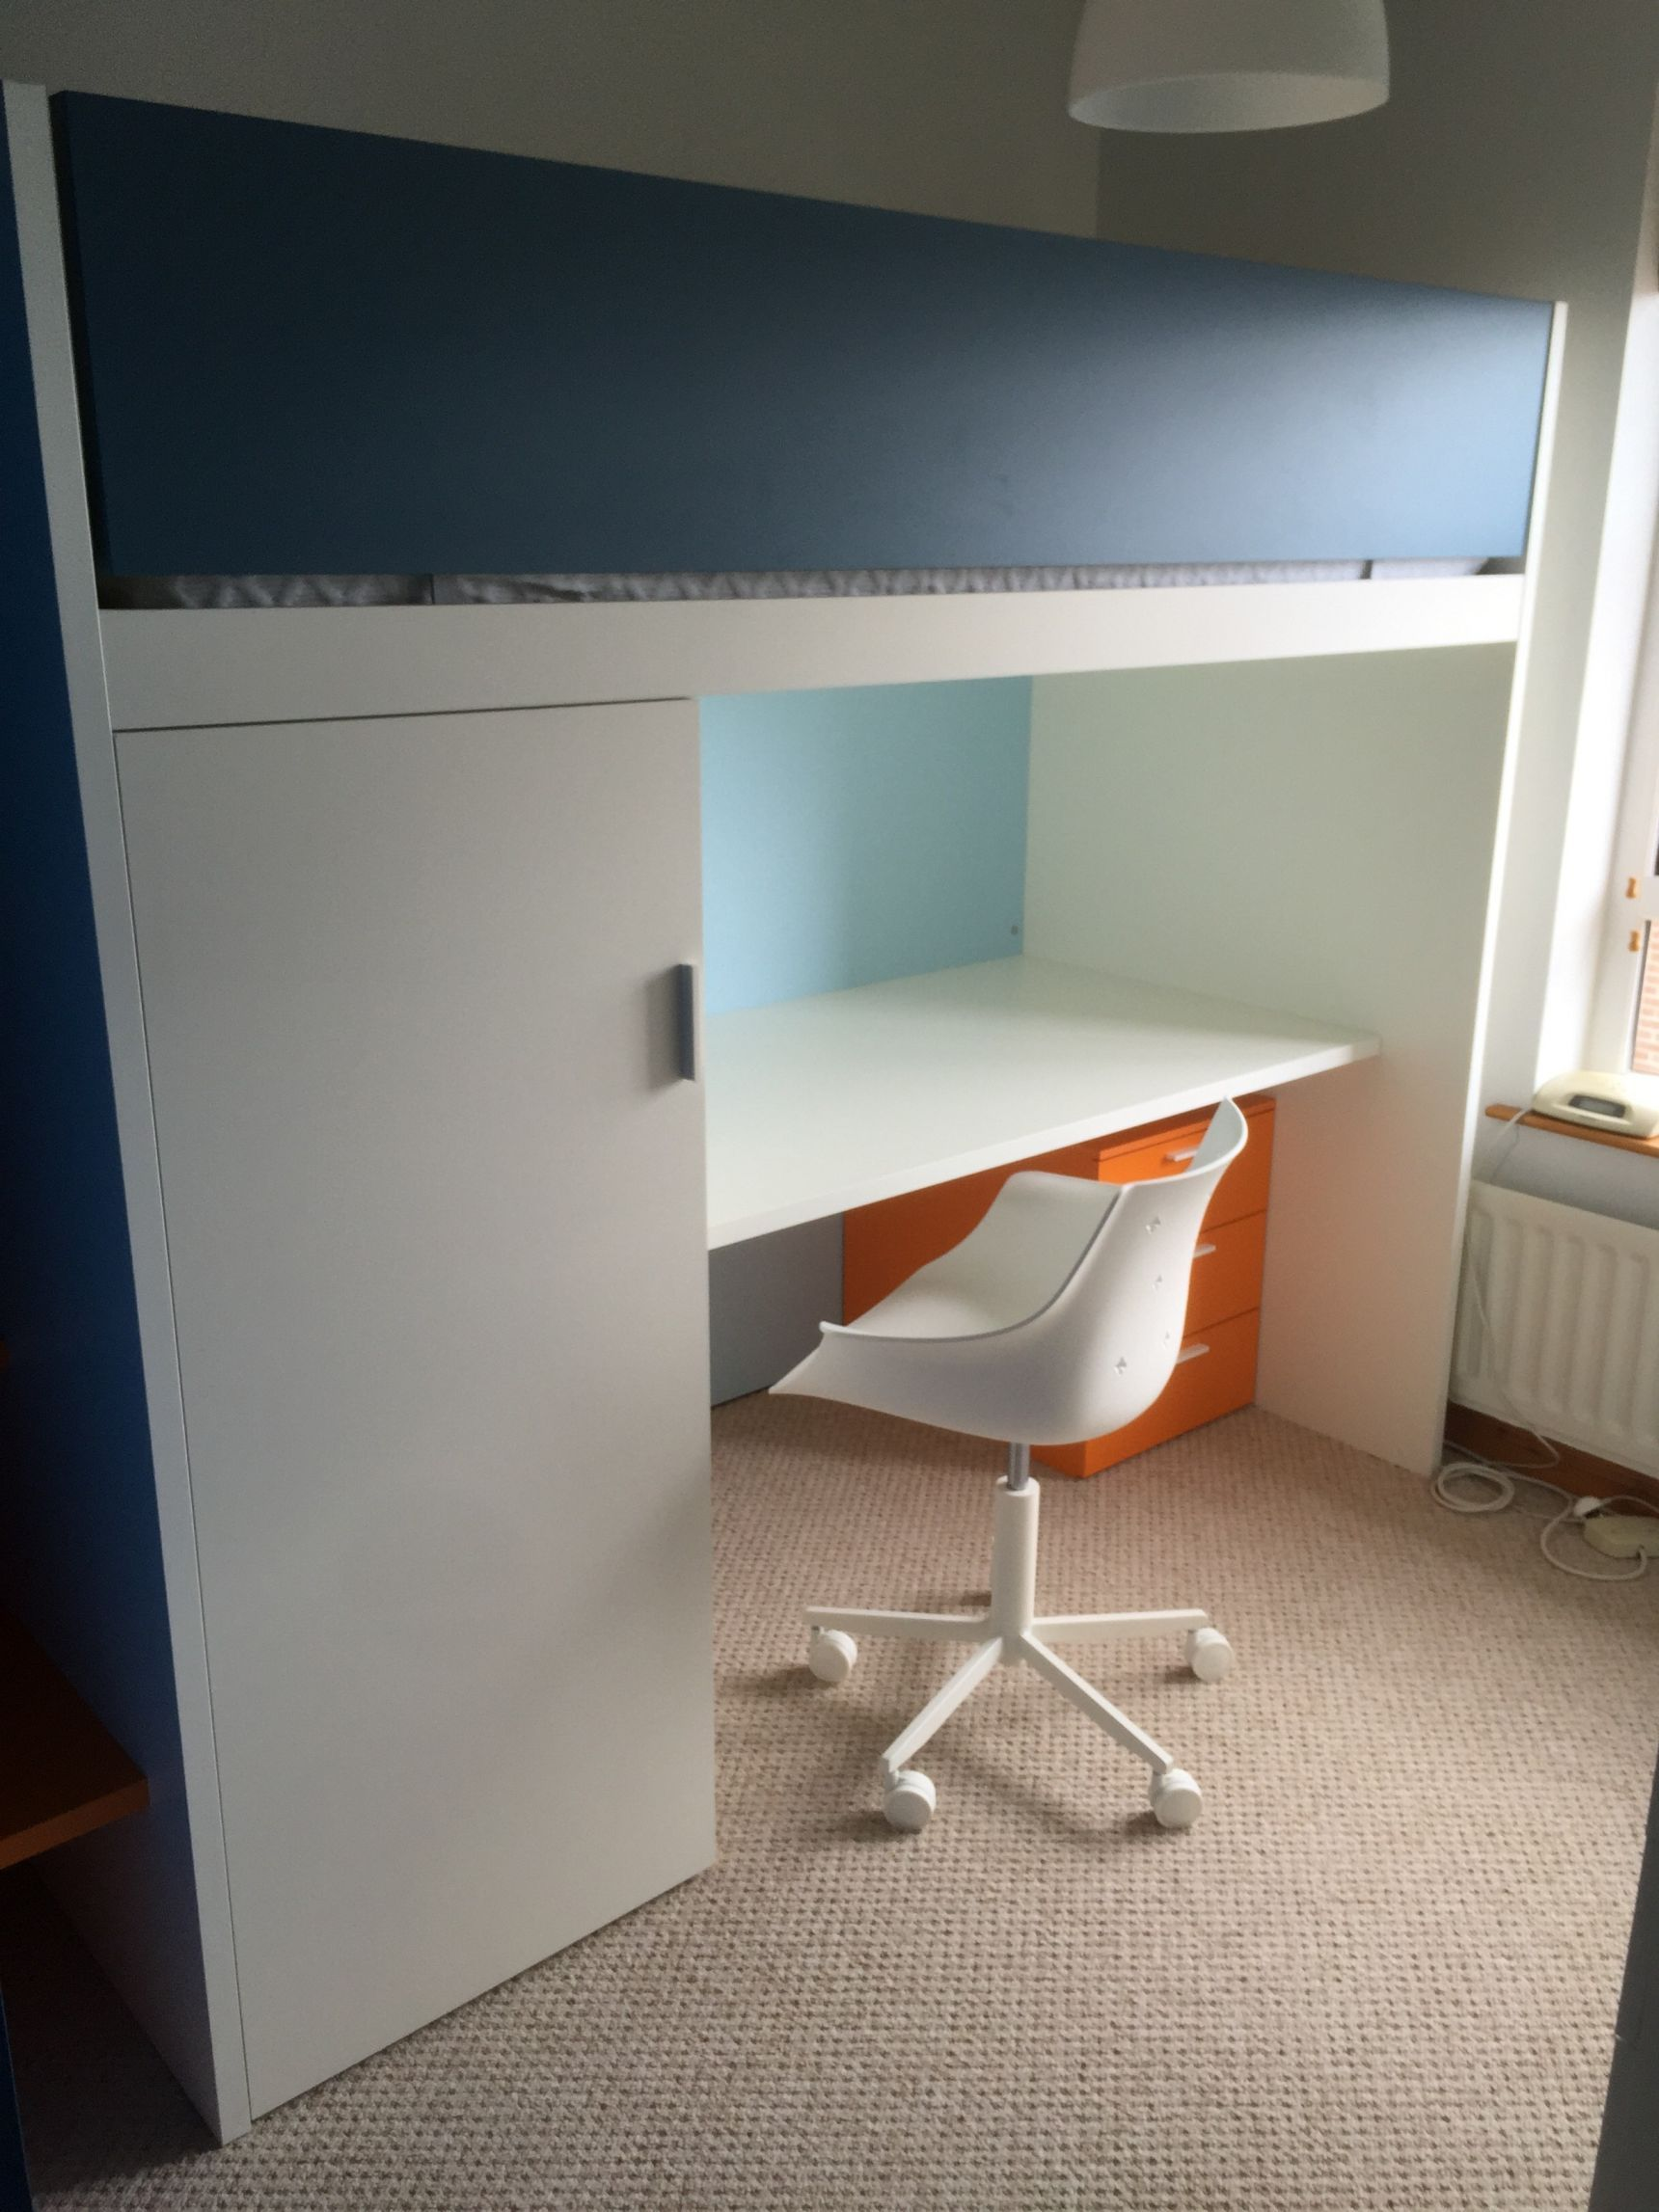 Bunk beds with storage and a desk below is a great way to utilise